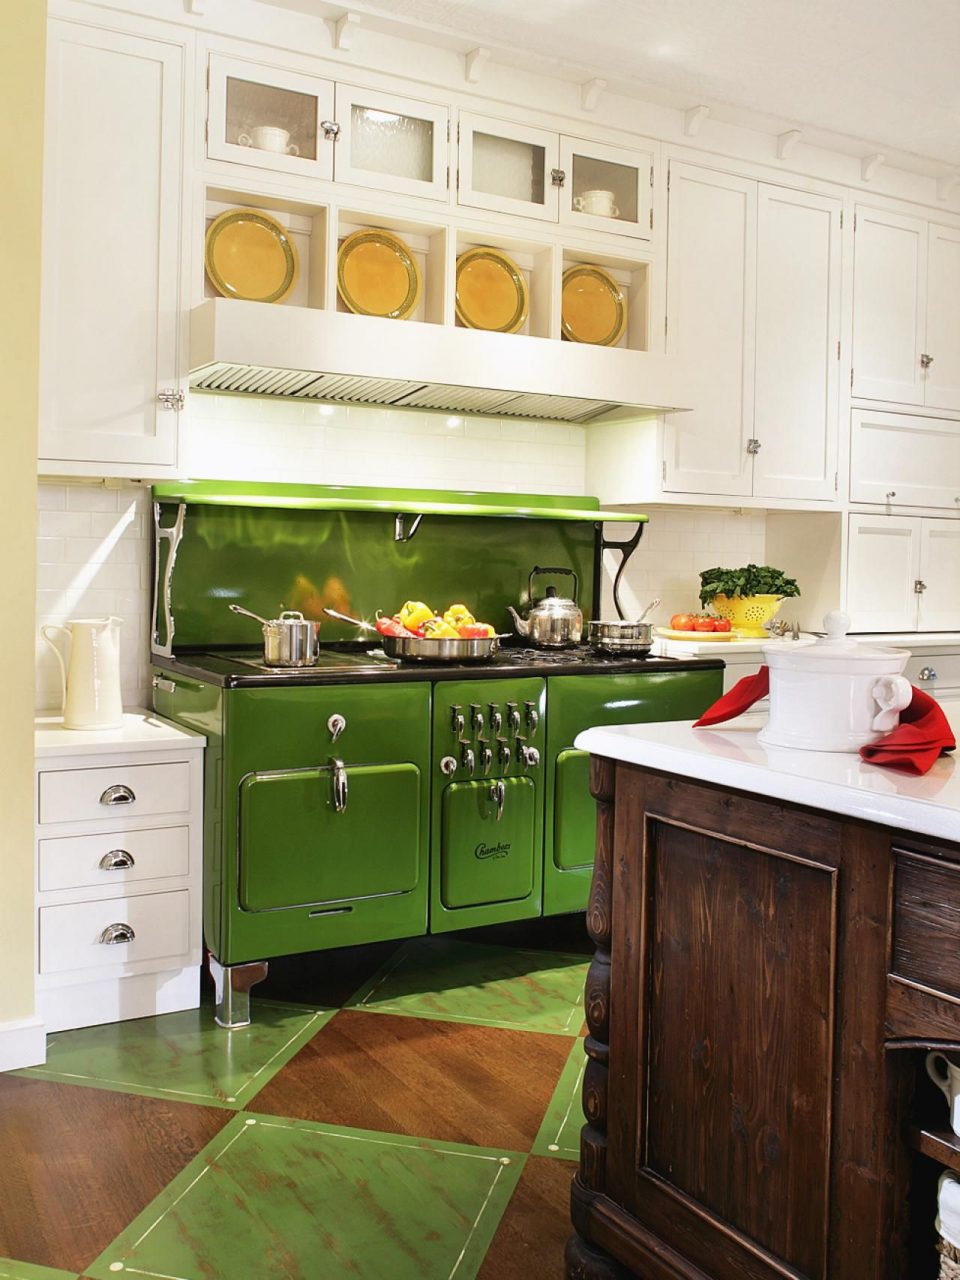 To Ensure The Vintage Apple Green Stove Remains The Kitchens Focal